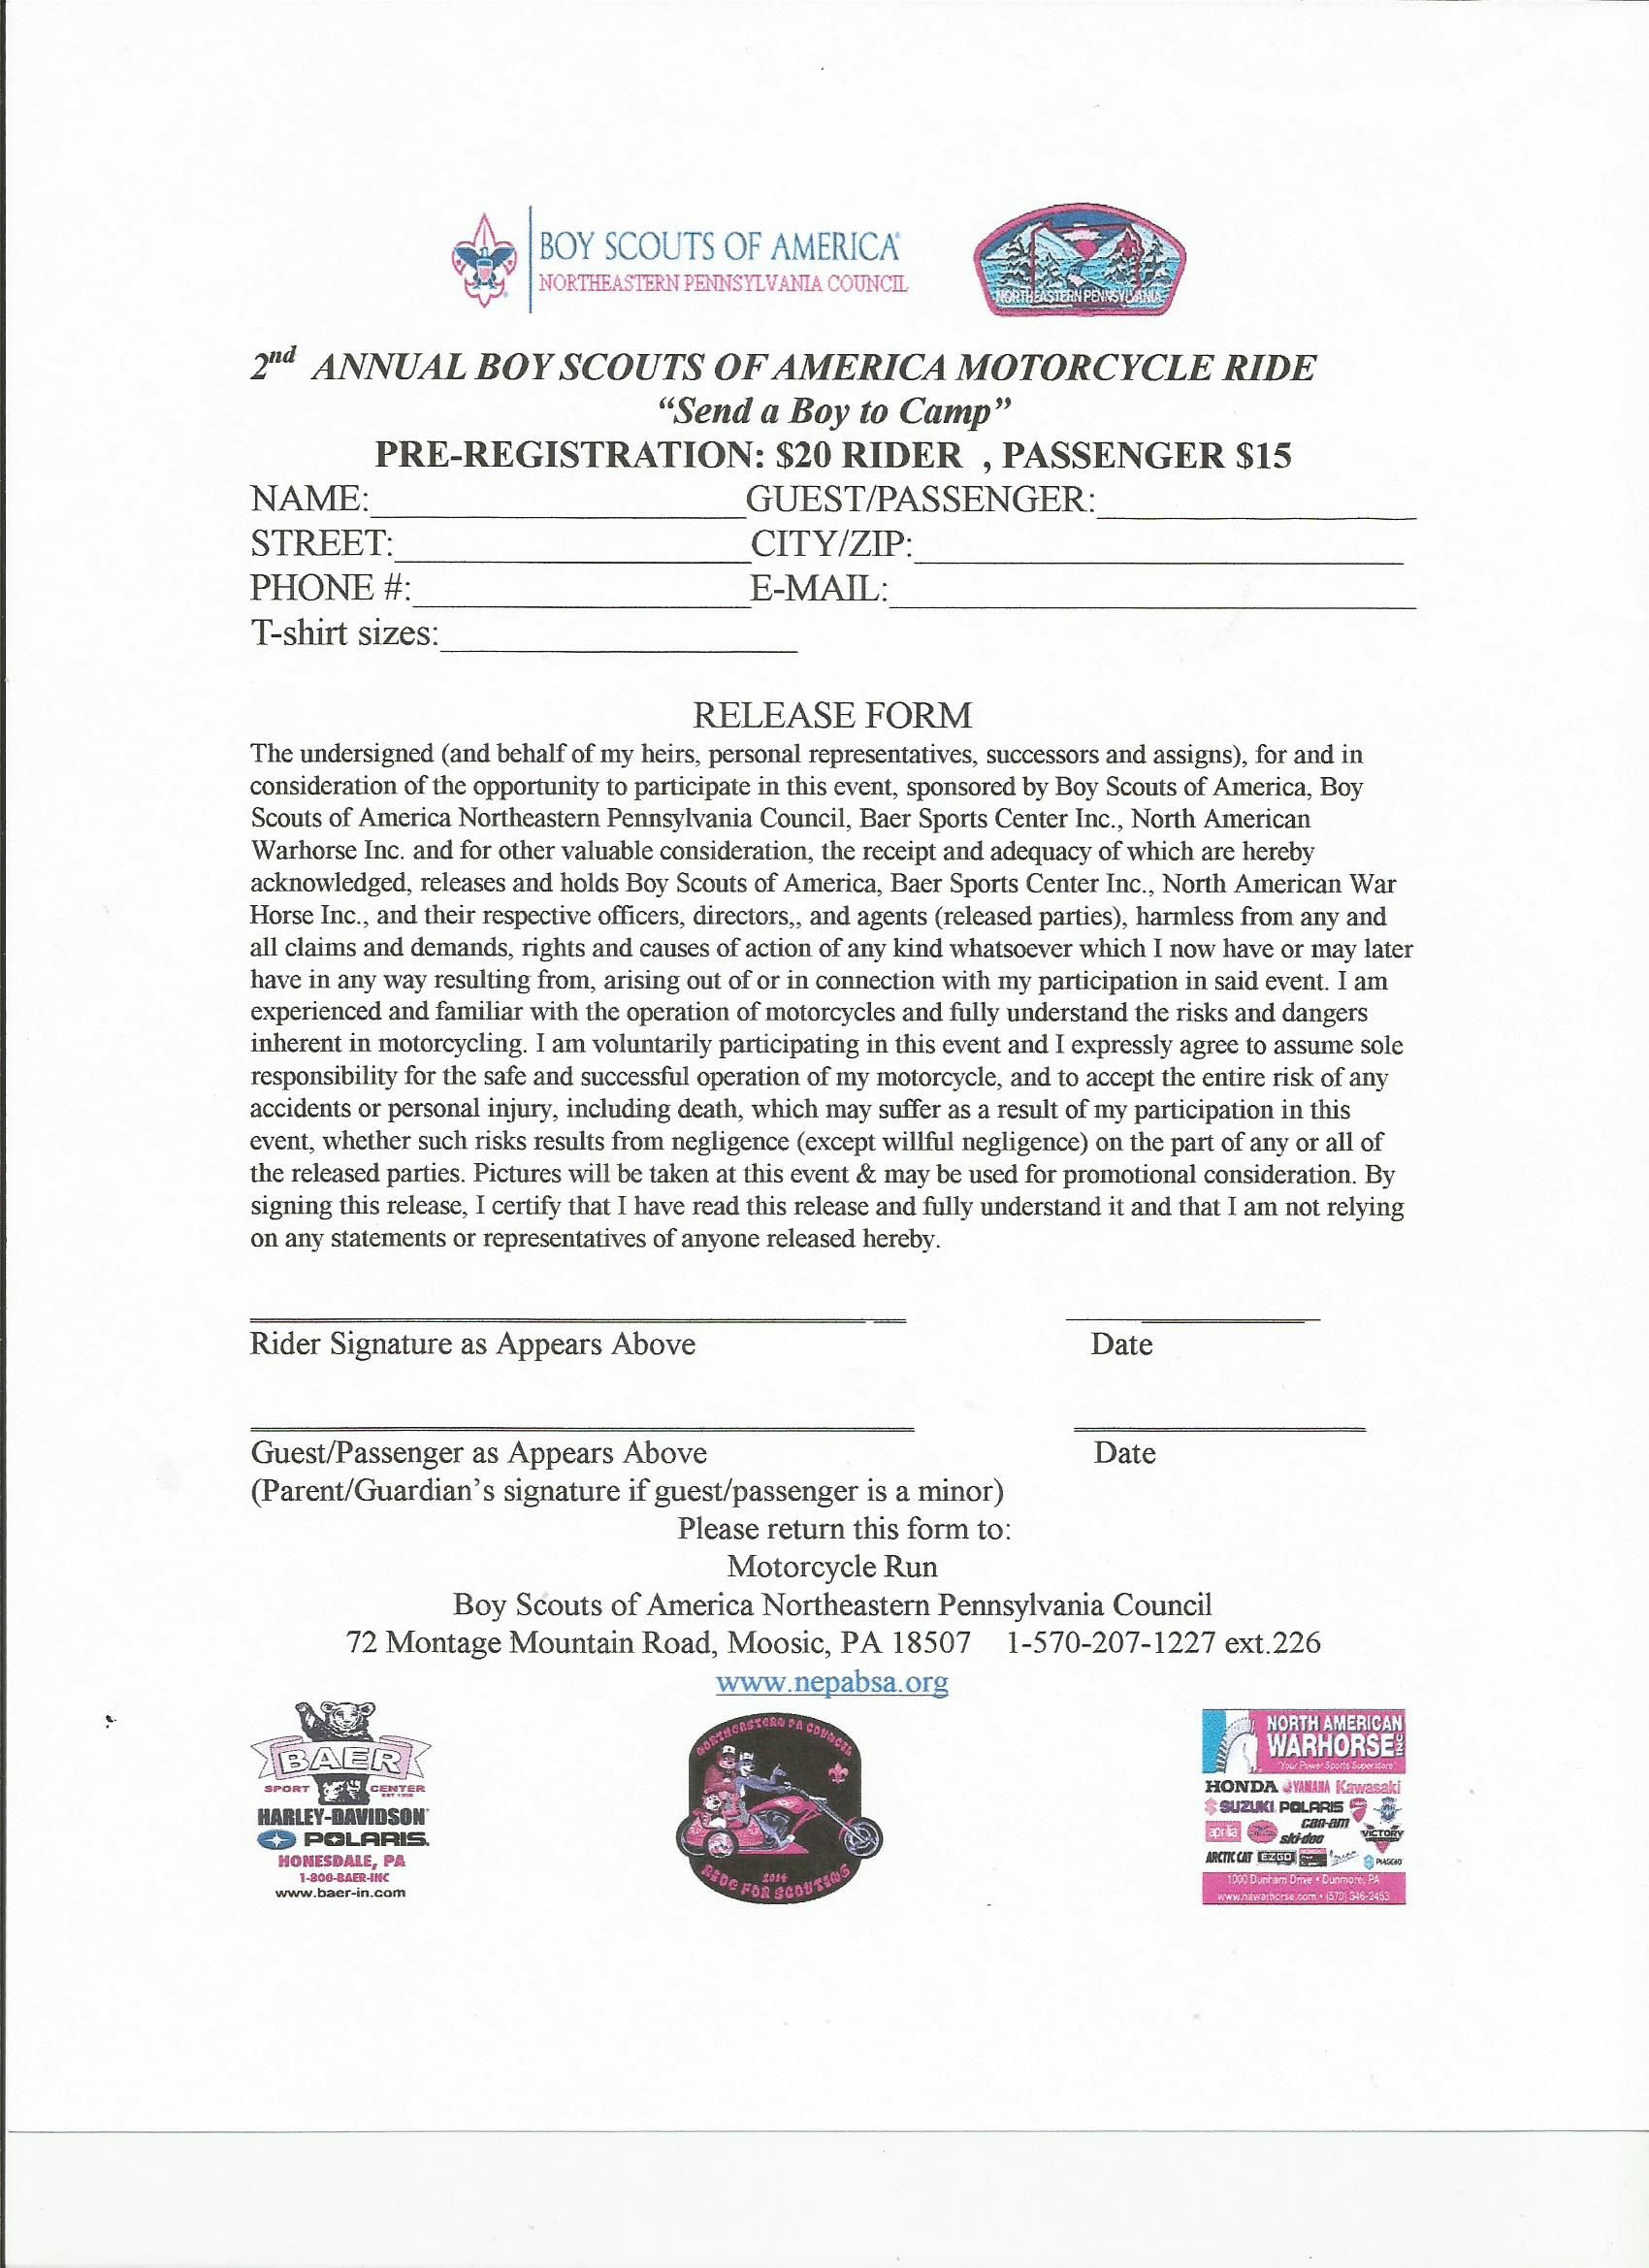 Registration Form Print And Submit Poker Run Individual Fundraising Riding Motorcycle